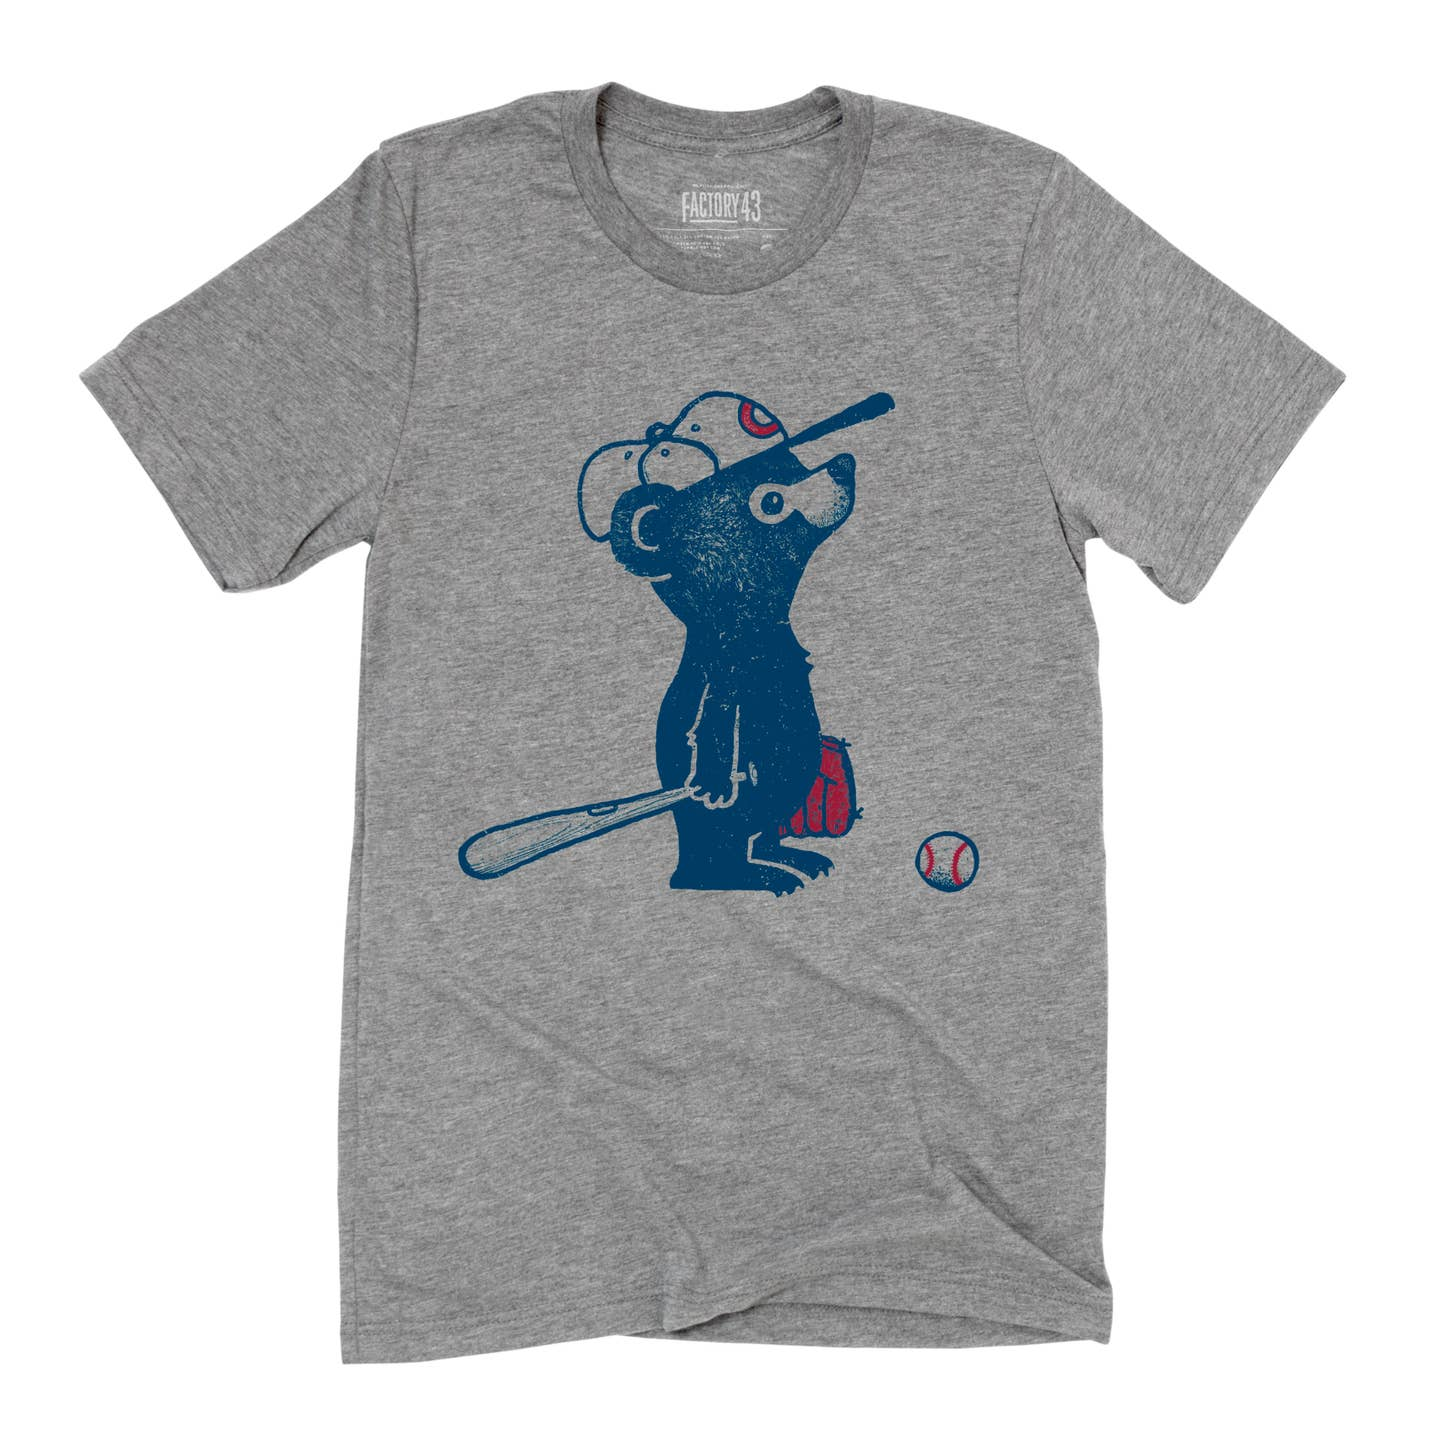 Factory 43 Lovable Cub t-shirt grey